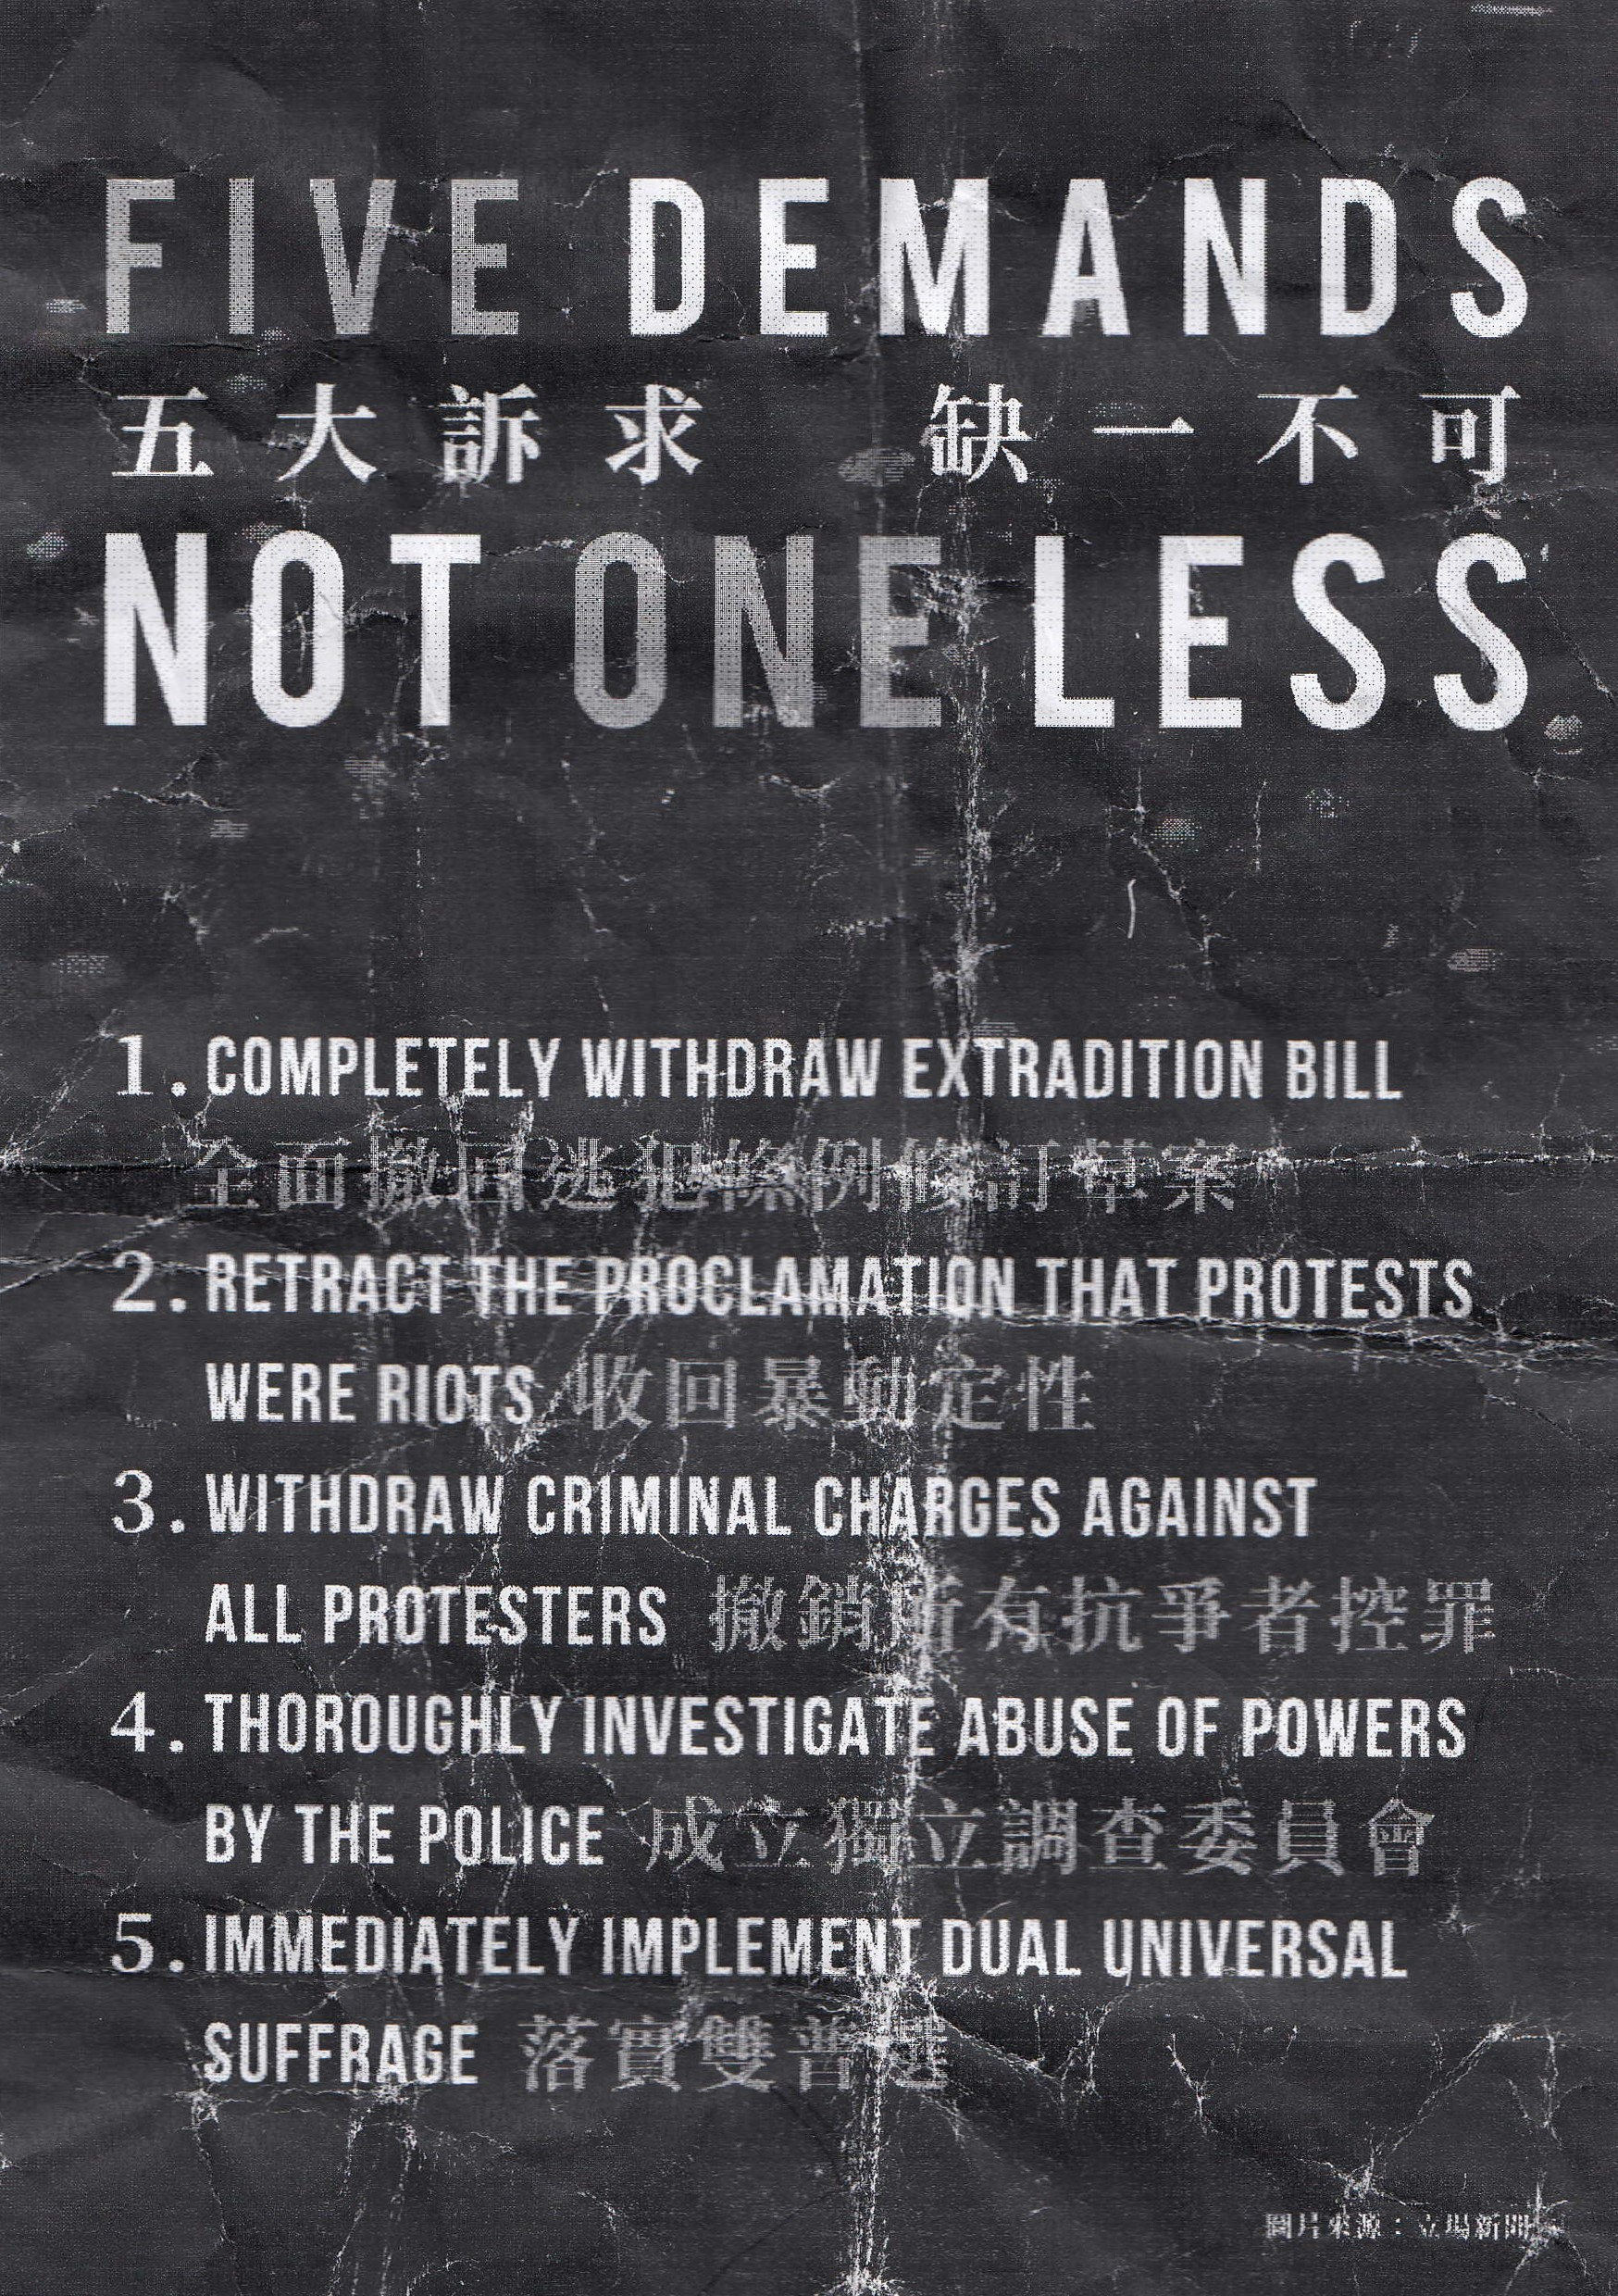 Hong Kong protest leaflet distributed in Manchester